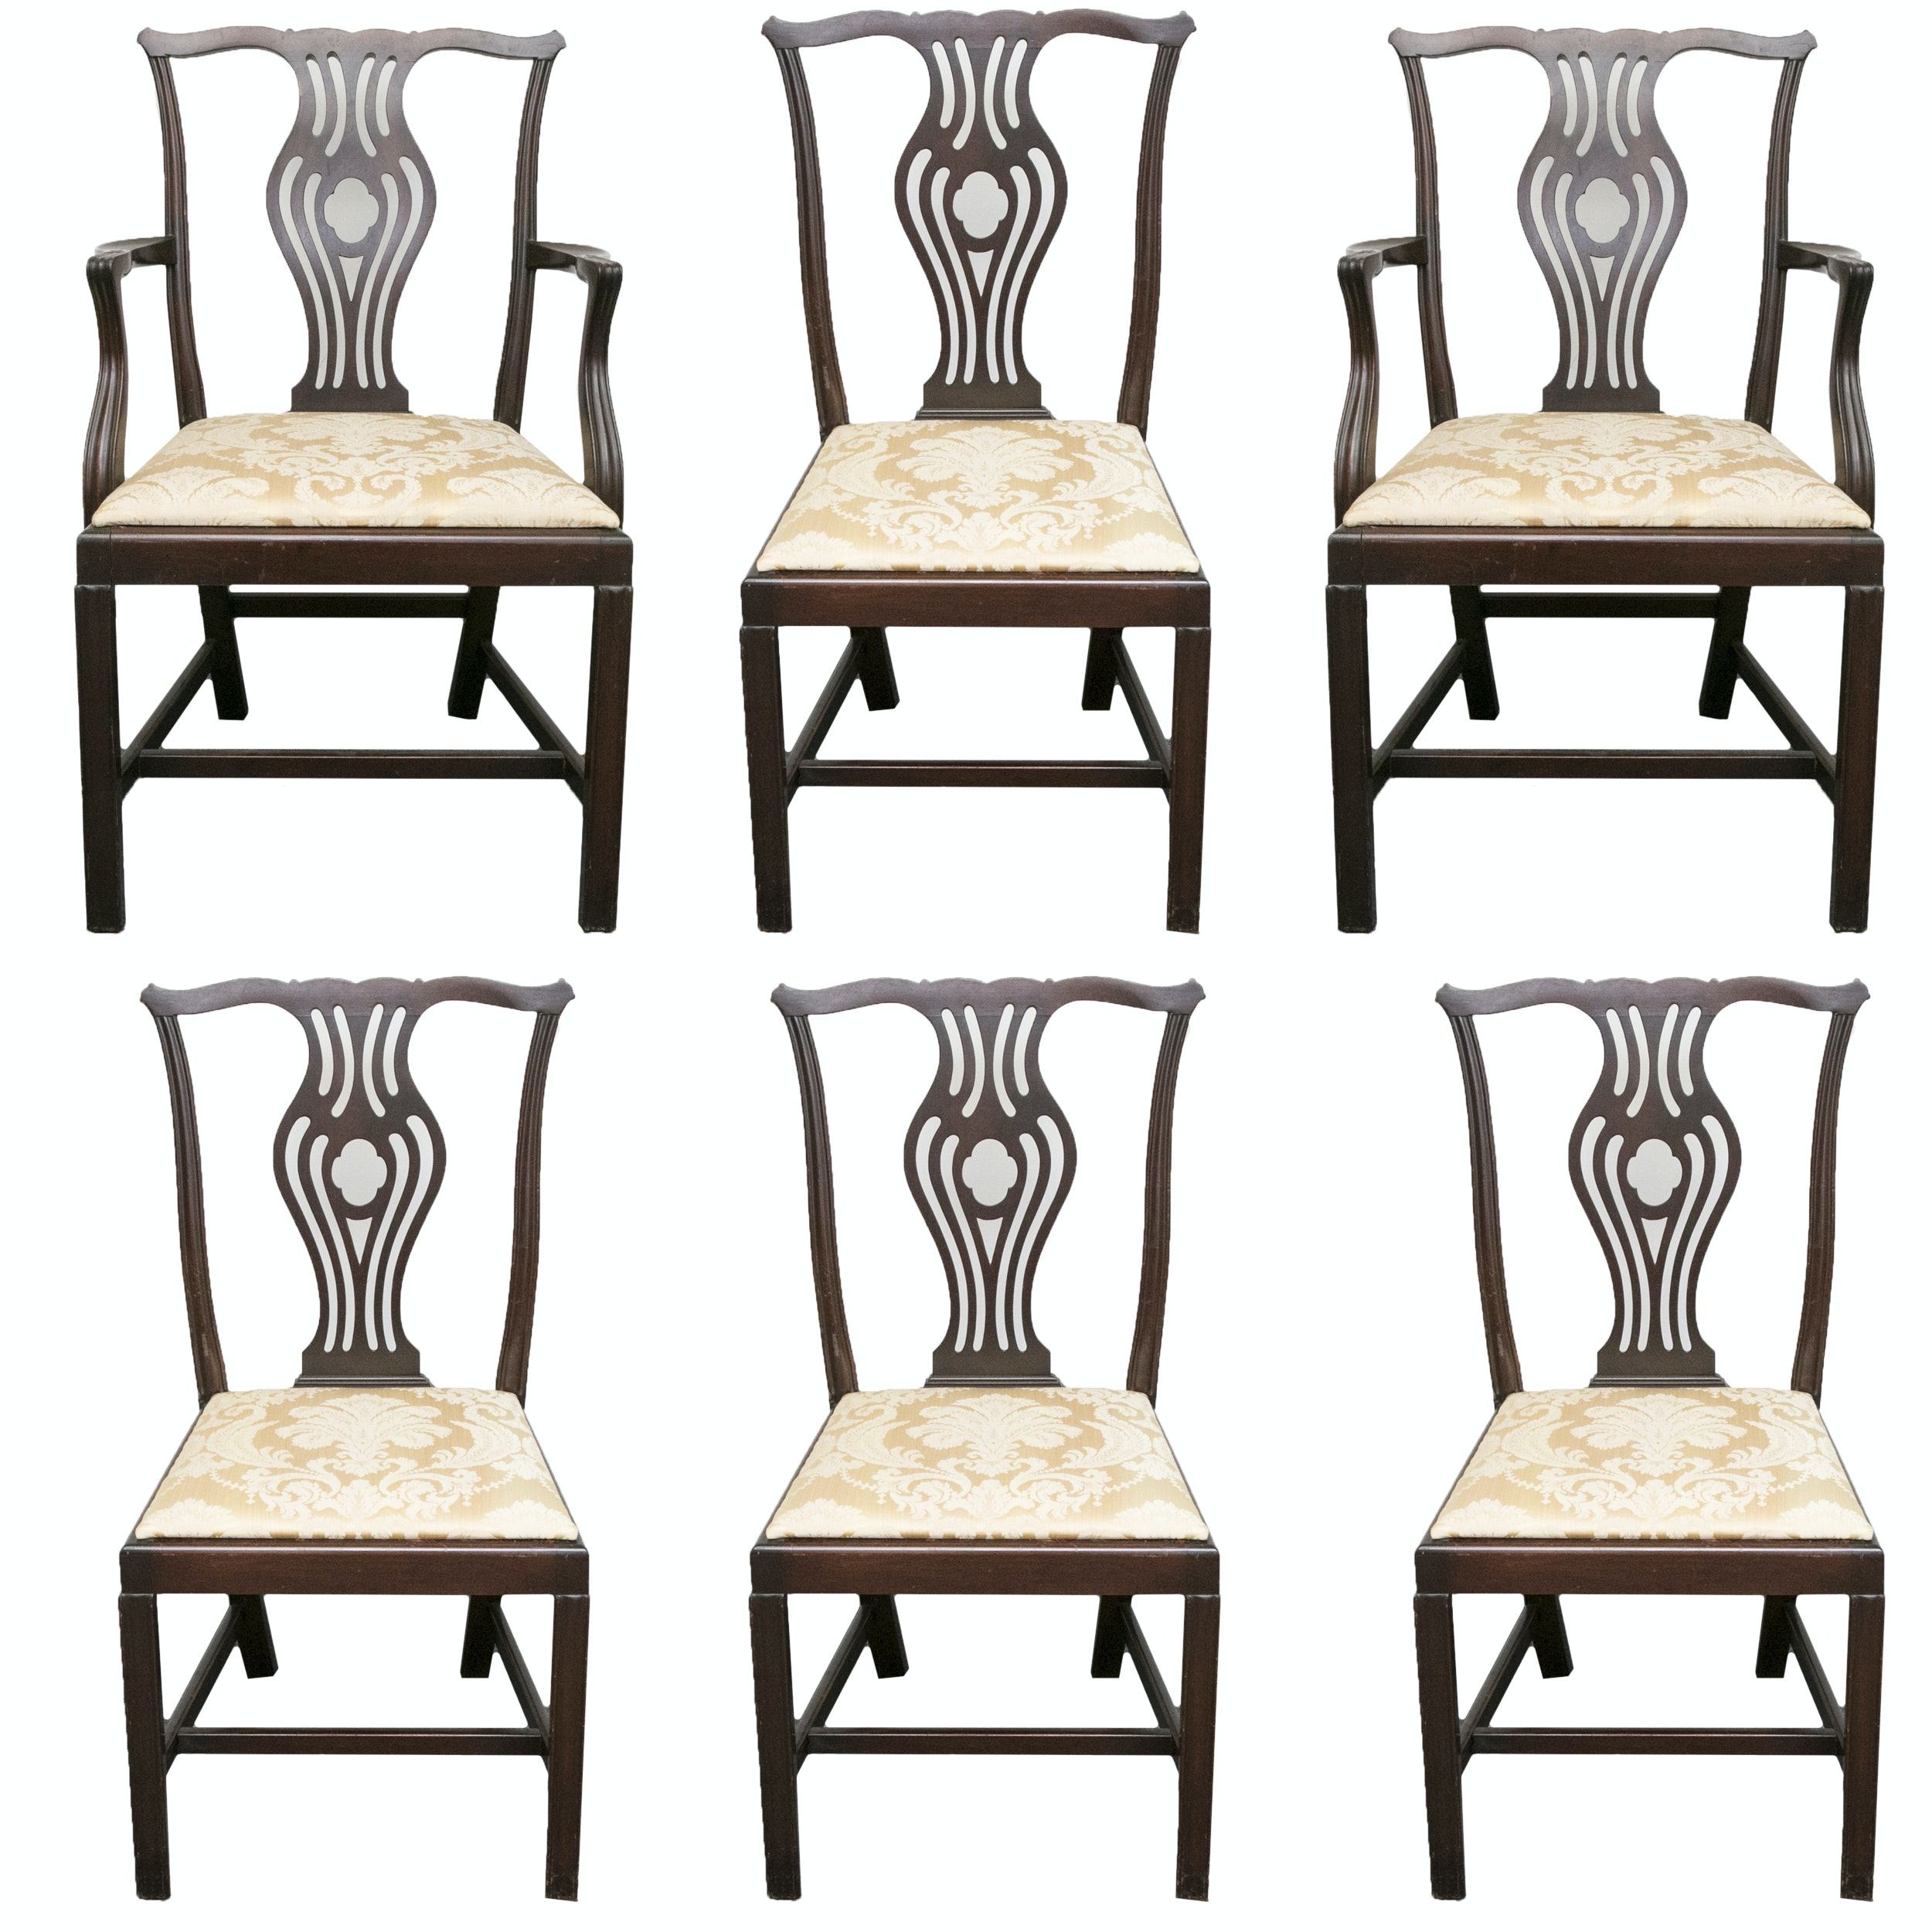 20th Century Chippendale Style Mahogany Dining Chairs